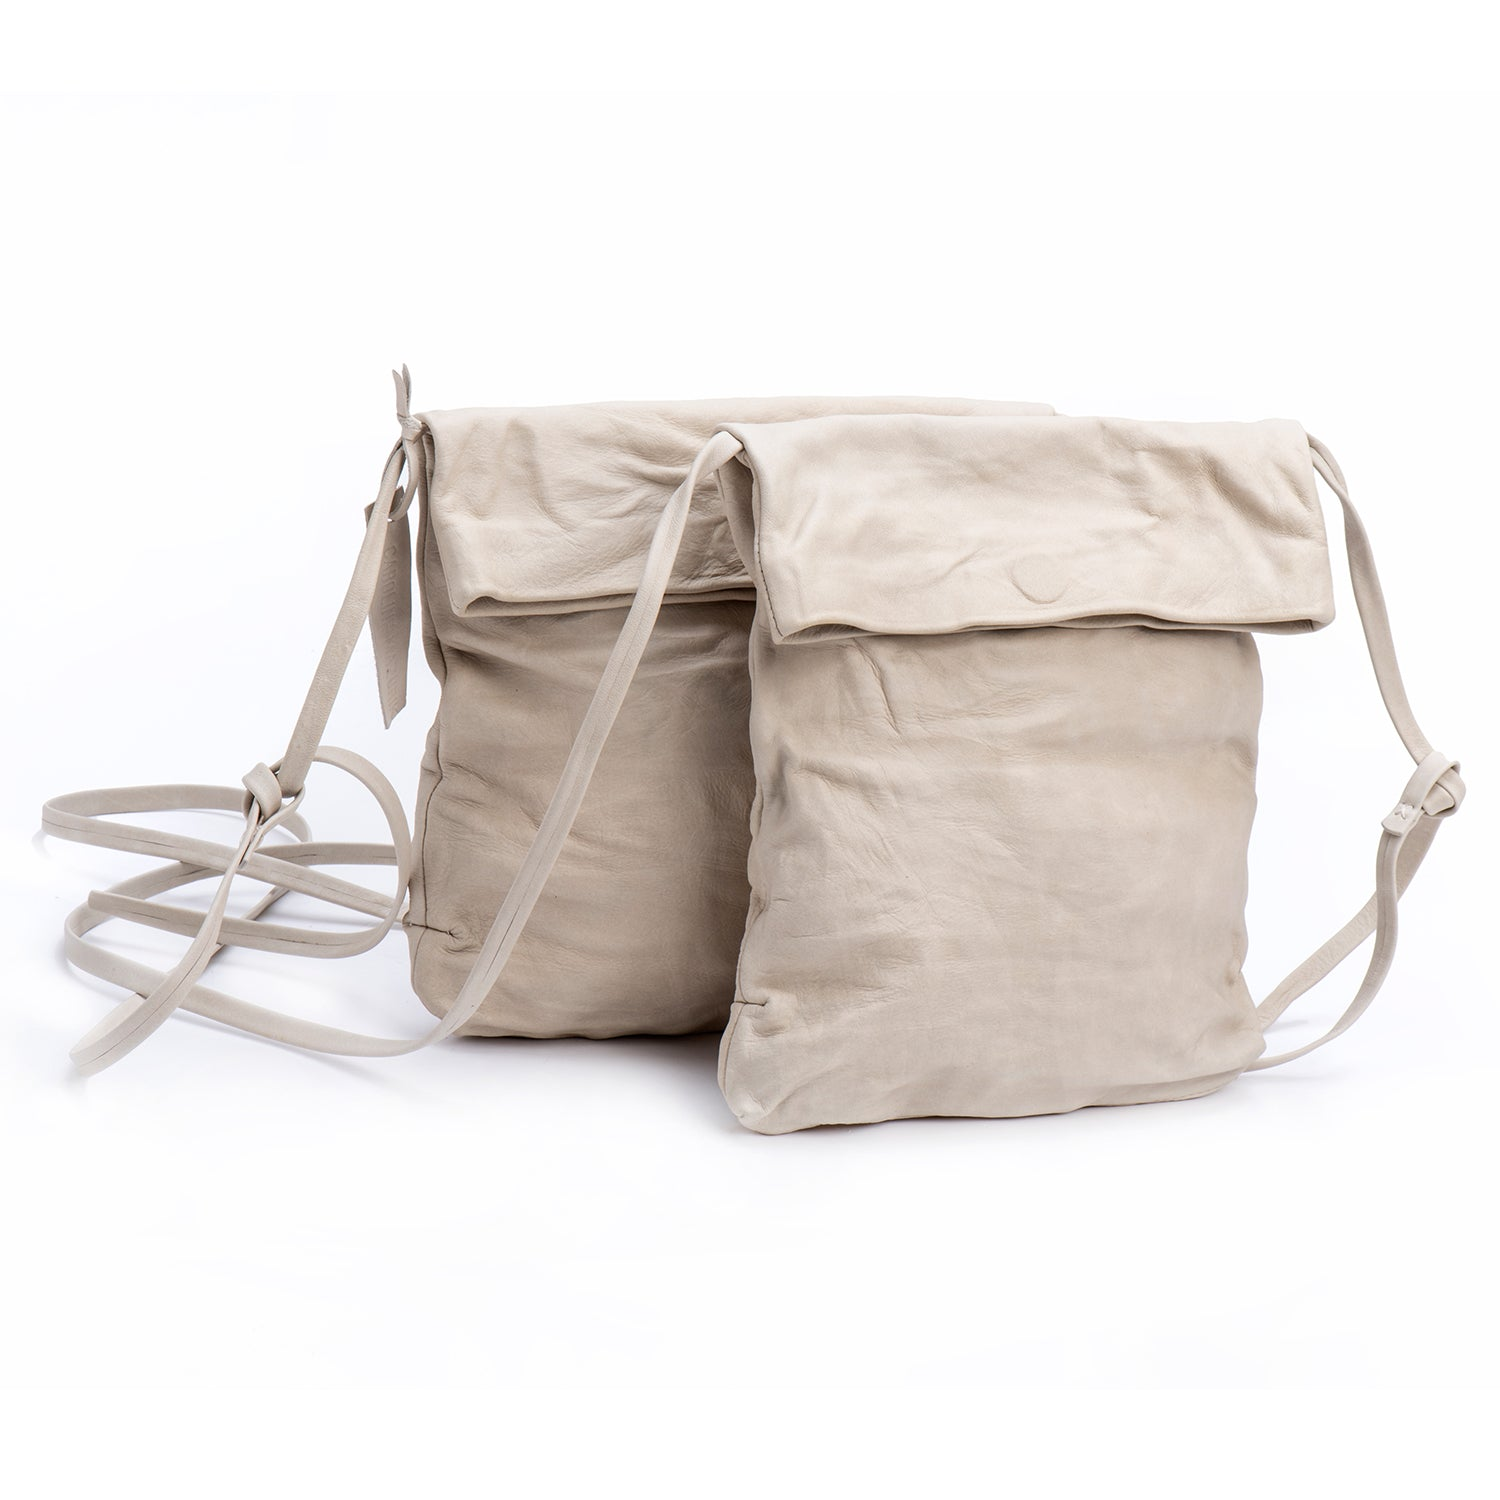 Stone-White Leather Foldover Crossbody Bag